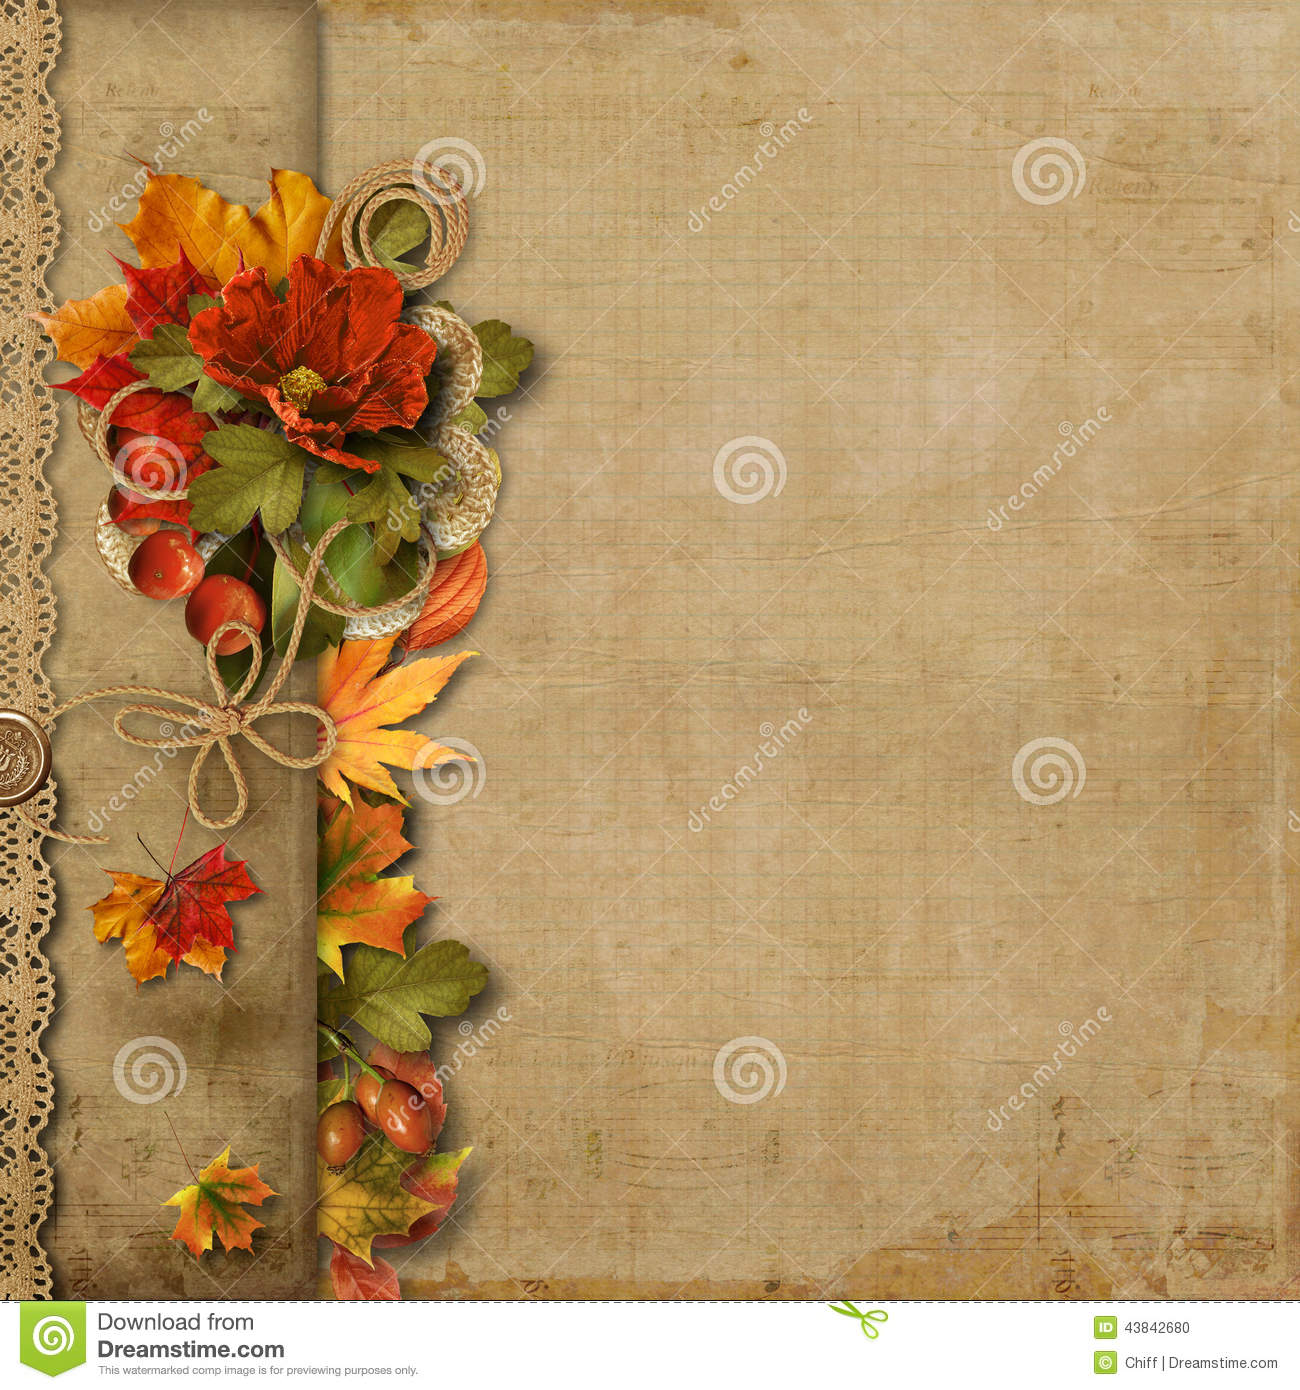 Fall Leaves Wallpaper Powerpoint Background Vintage Beautiful Background With Autumn Border Stock